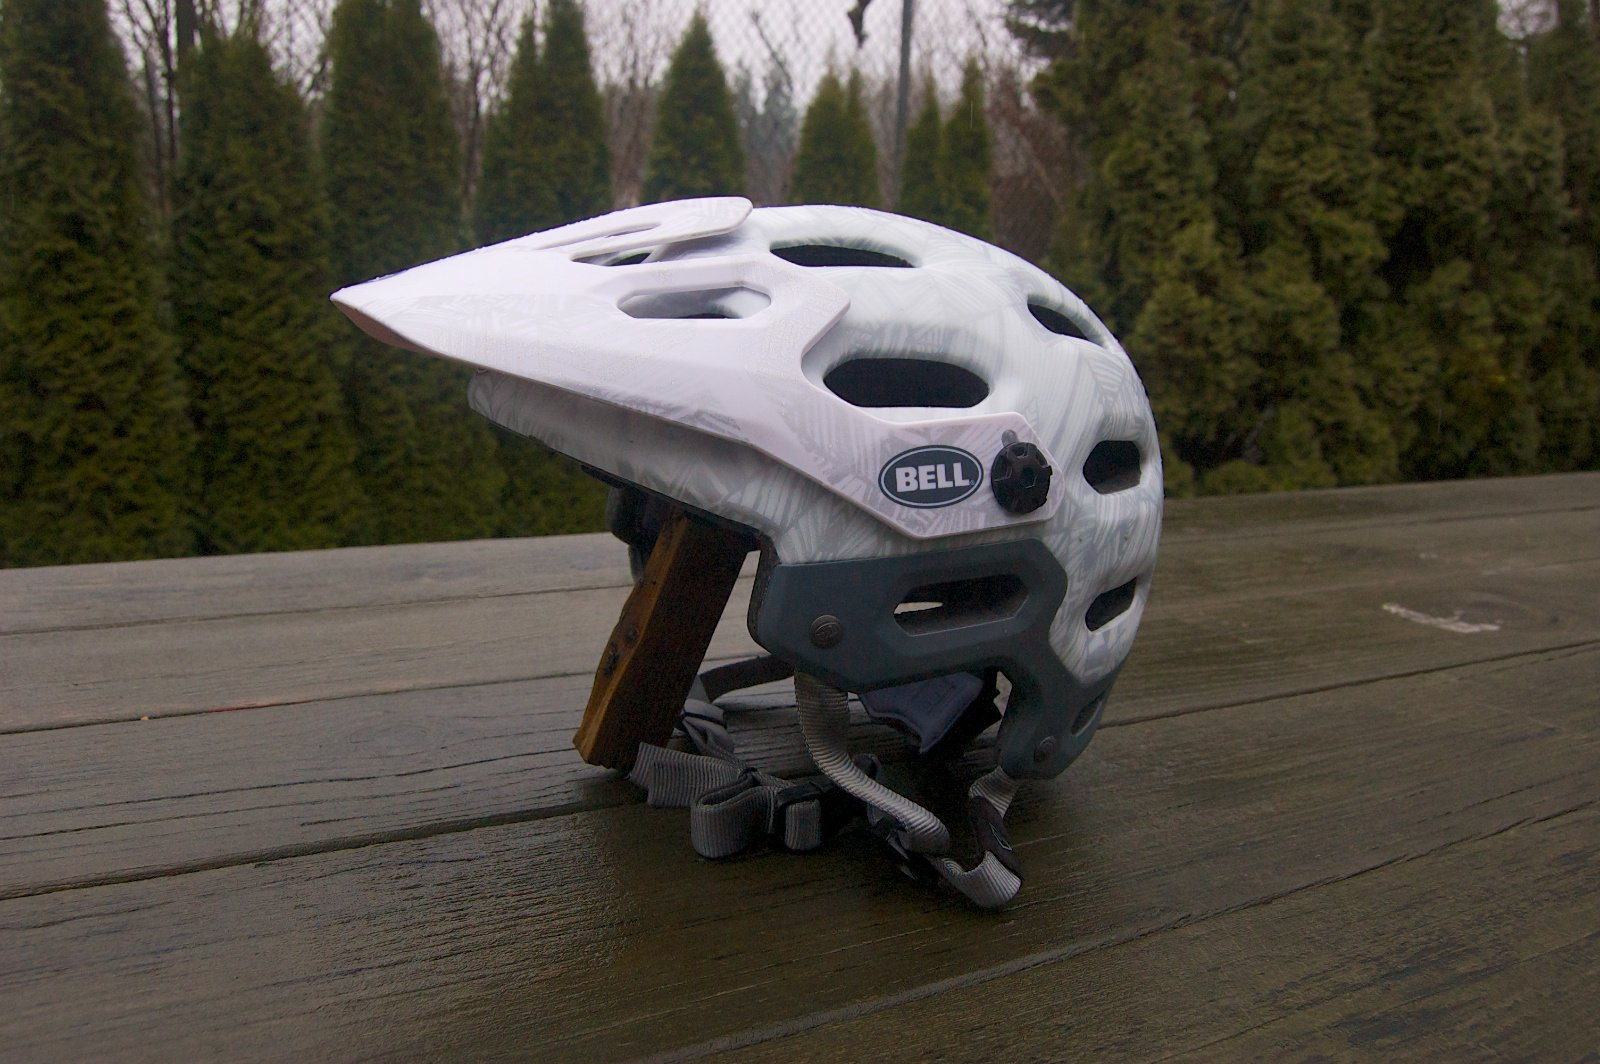 Bell Super Helmet: Reviewed